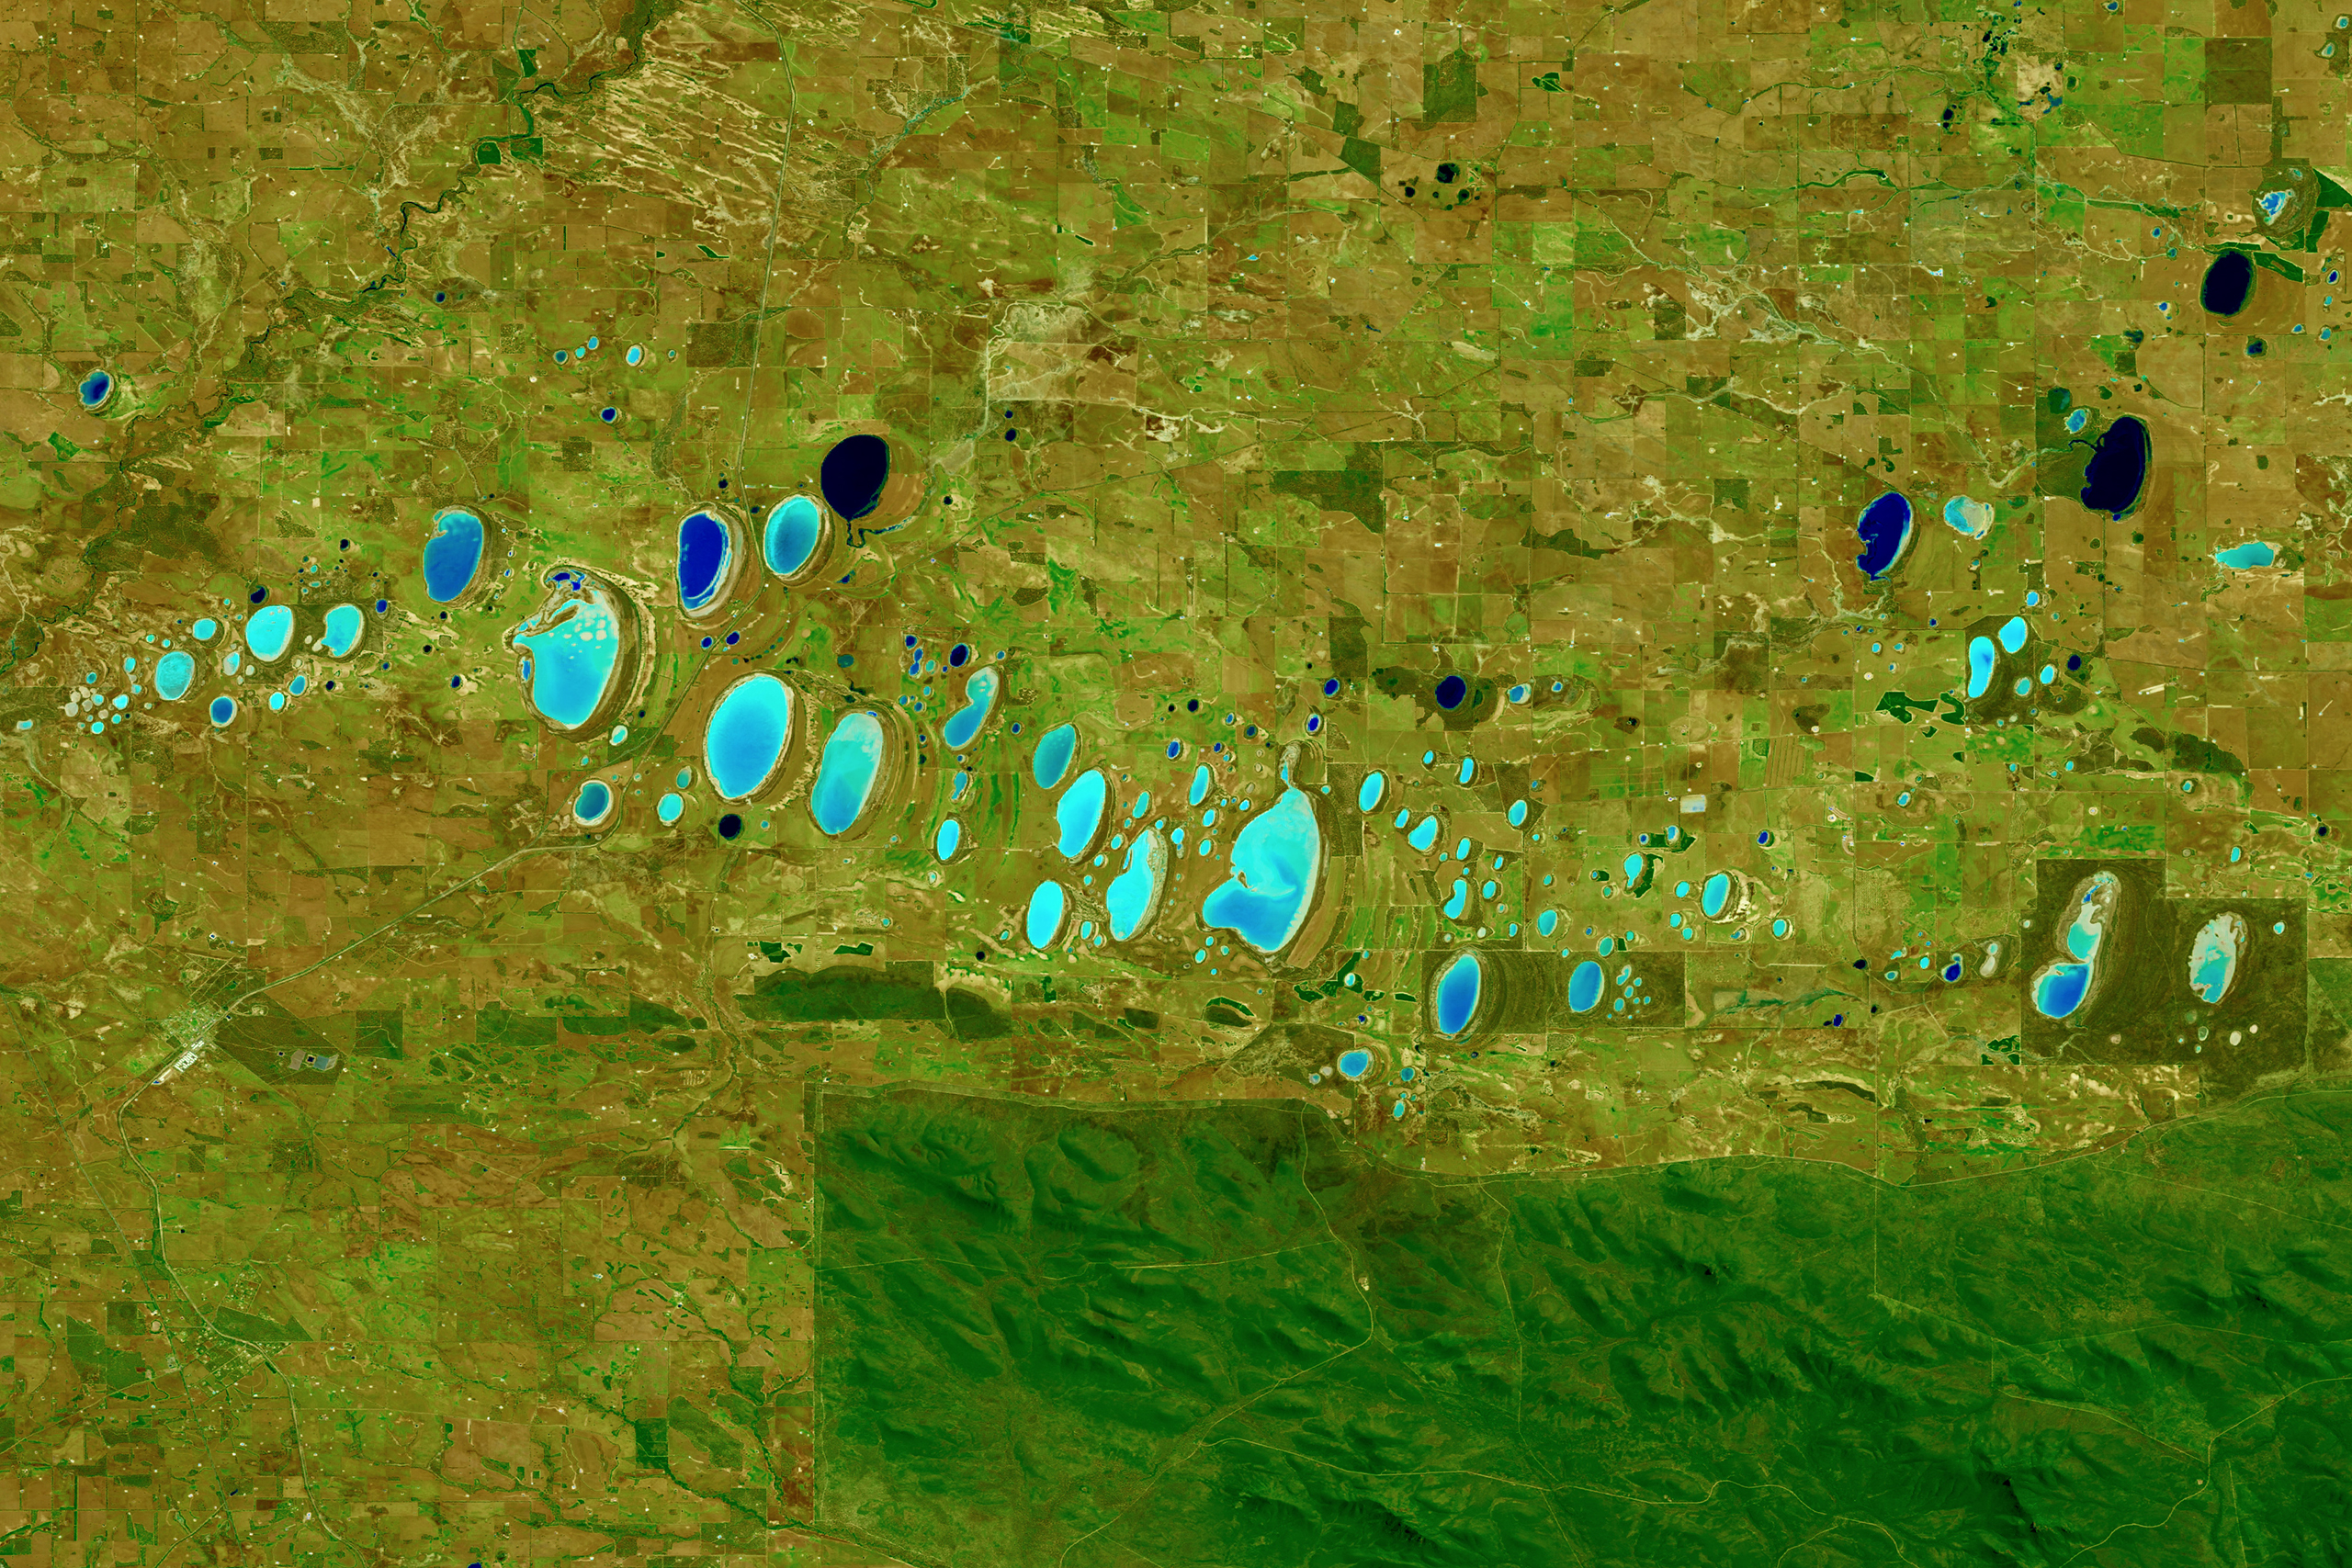 Stirling Range National Park, AustraliaA shortwave infrared image of chain of saline lakes, which vary in color as a result of differing sediments, aquatic and terrestrial plant growth, water chemistry, algae, and hydrology. Shortwave infrared is helpful in differentiating wet earth from dry earth. Oct. 21, 2015.